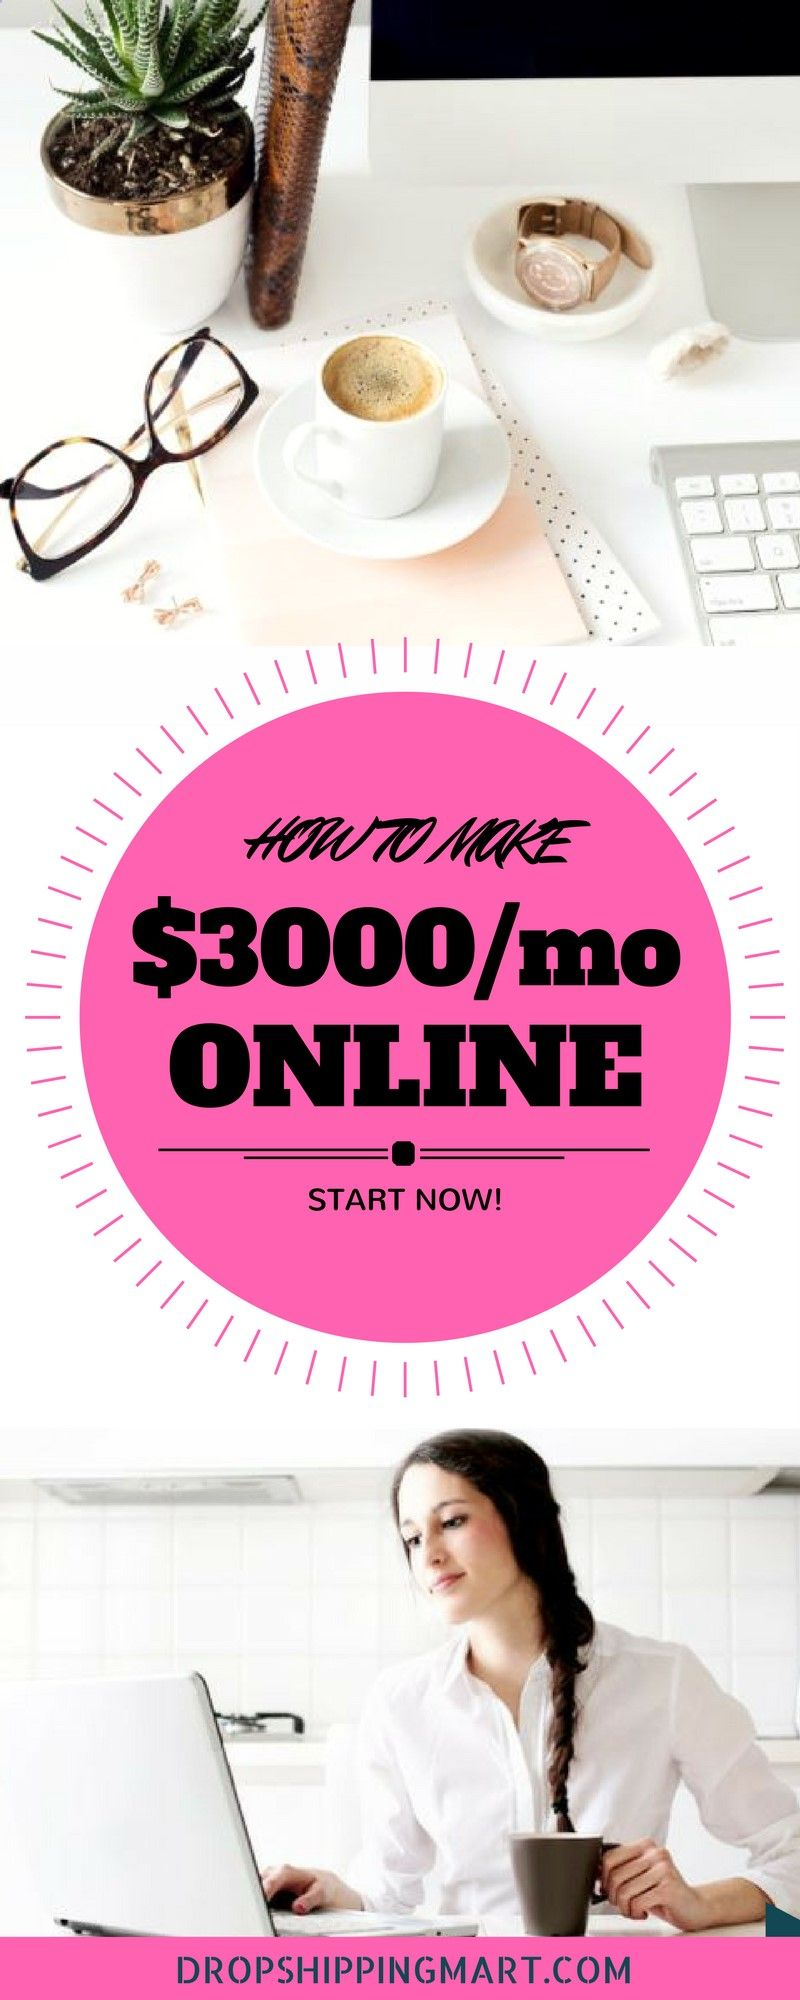 Internet Business System Today Earn Money - Copy Paste Earn Money - Copy Paste Earn Money - Dropshipping business. how to make money working from home? Looking for work from home jobs? Online jobs are a great way to earn money without leaving your home. - You're copy pasting anyway...Get paid for it. - You're copy pasting anyway...Get paid for it. Here's Your Opportunity To CLONE My Entire Proven Internet Business System Today!